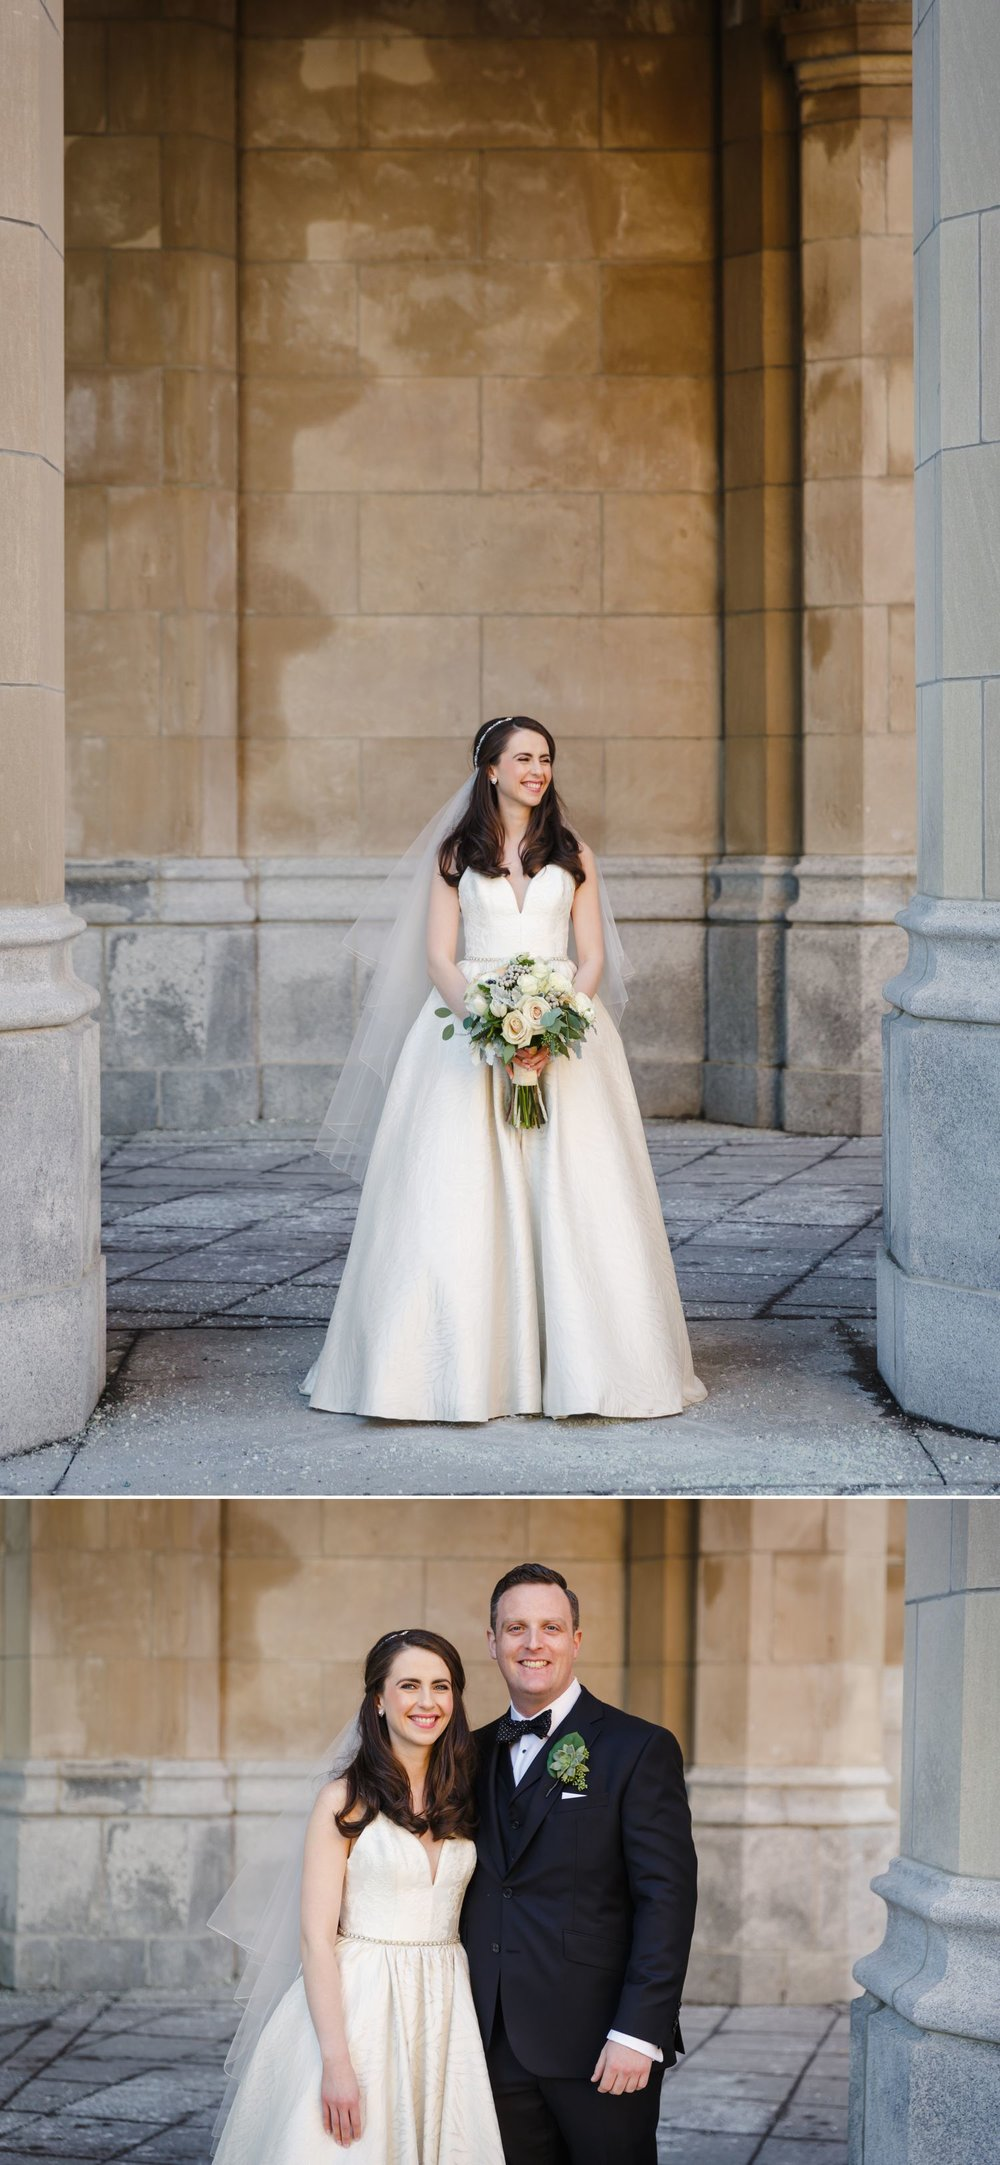 Portraits of the bride and groom taken outside the Chateau Laurier in downtown Ottawa